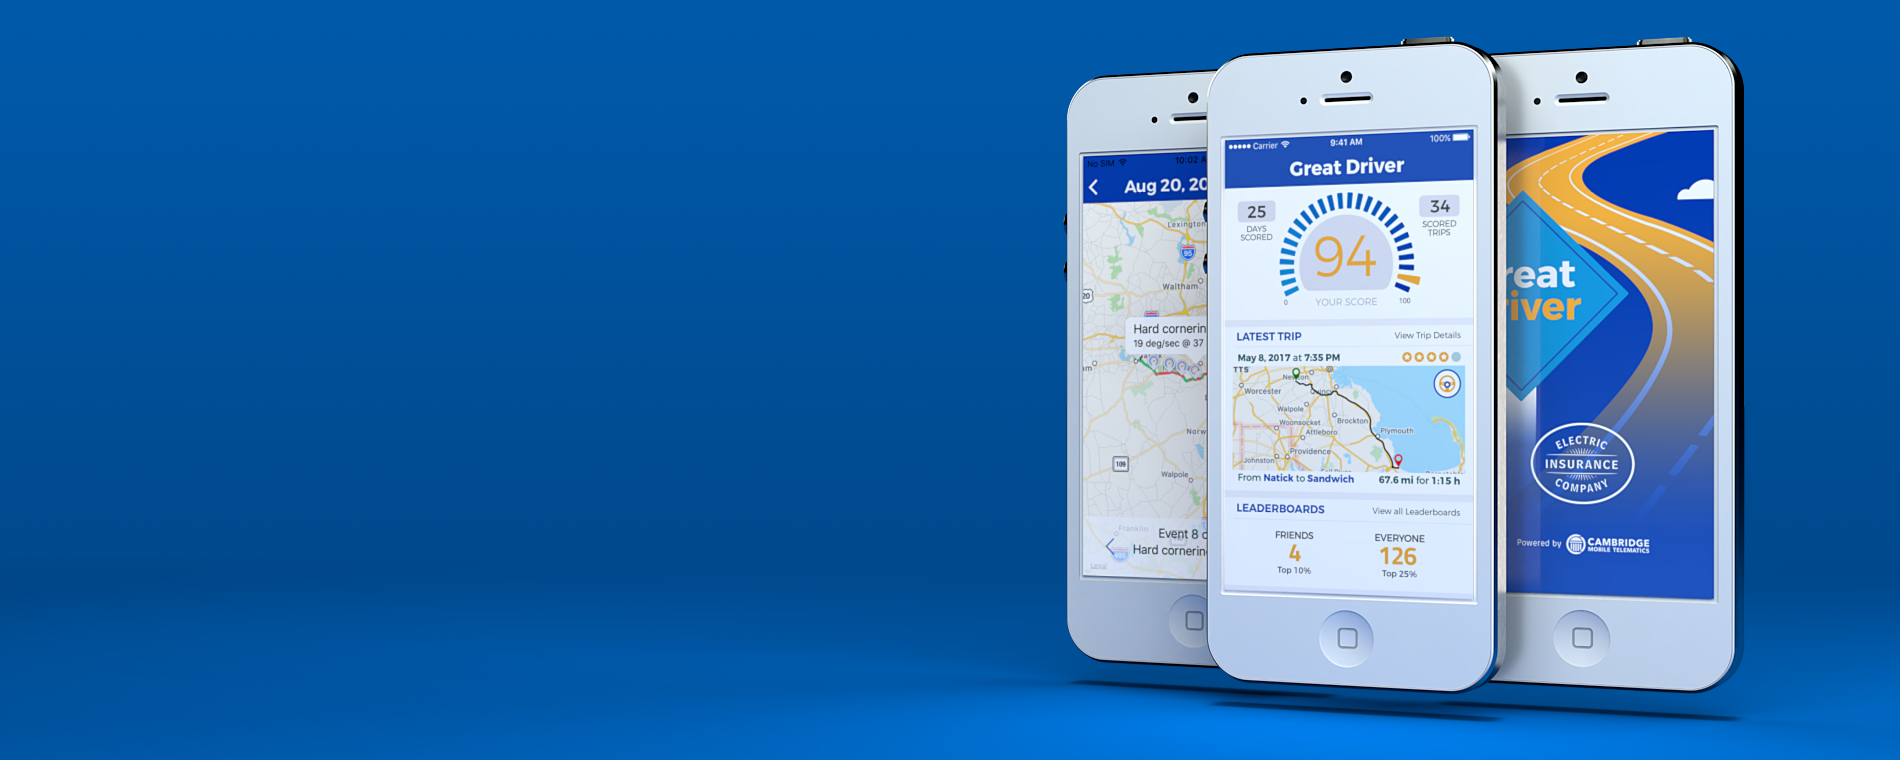 The Great Driver app is safe and secure.